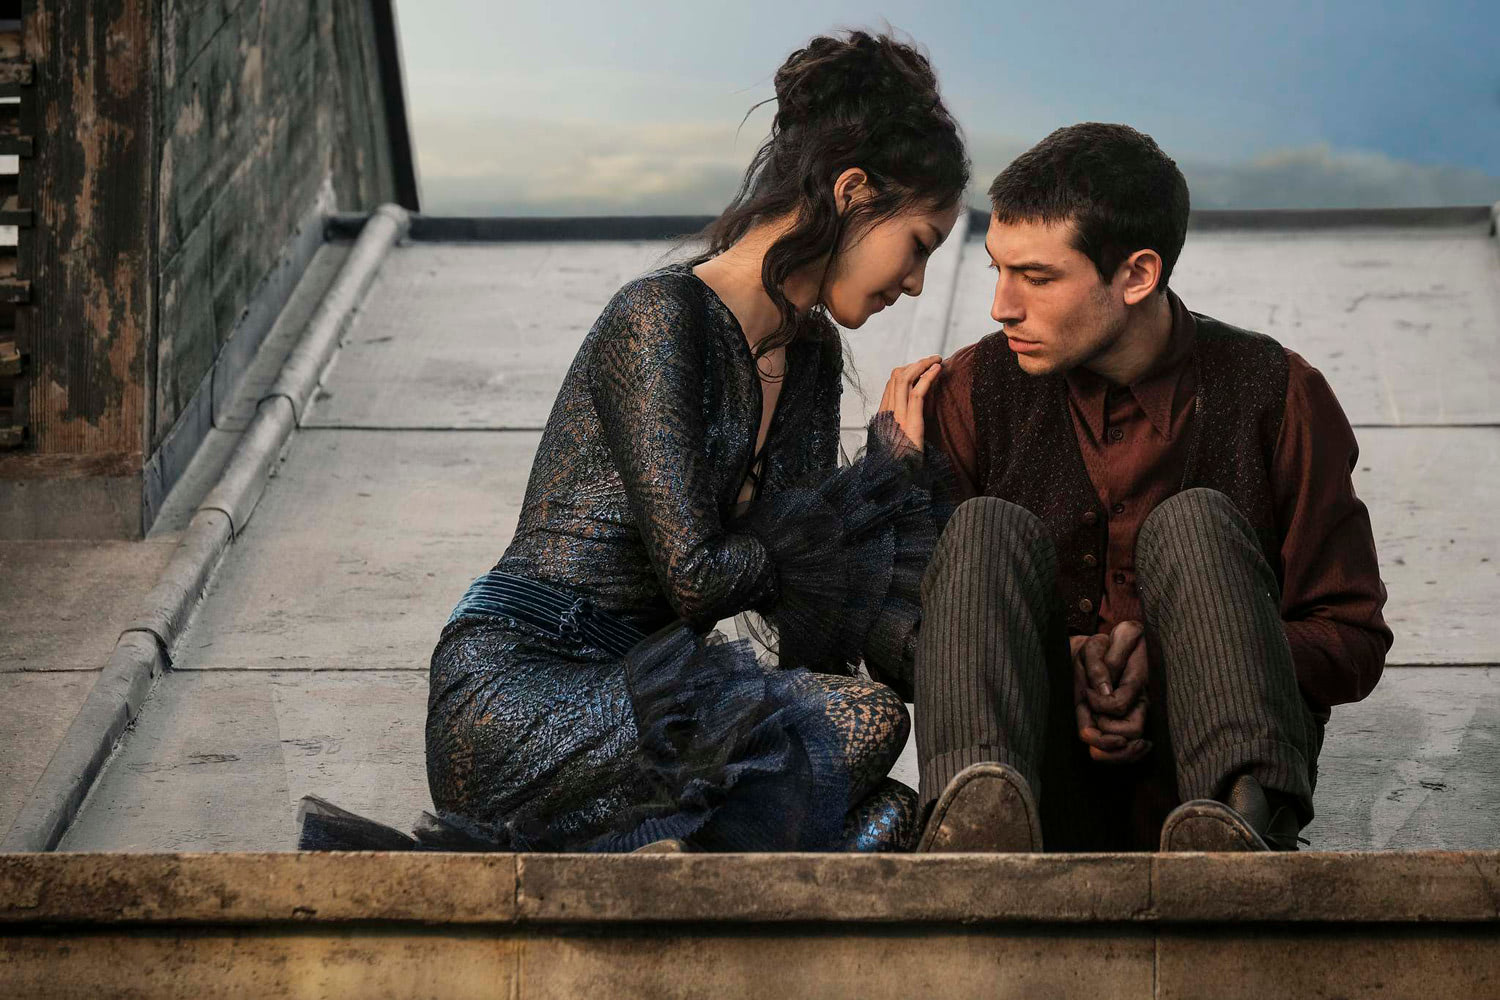 Credence and Nagini on the roof